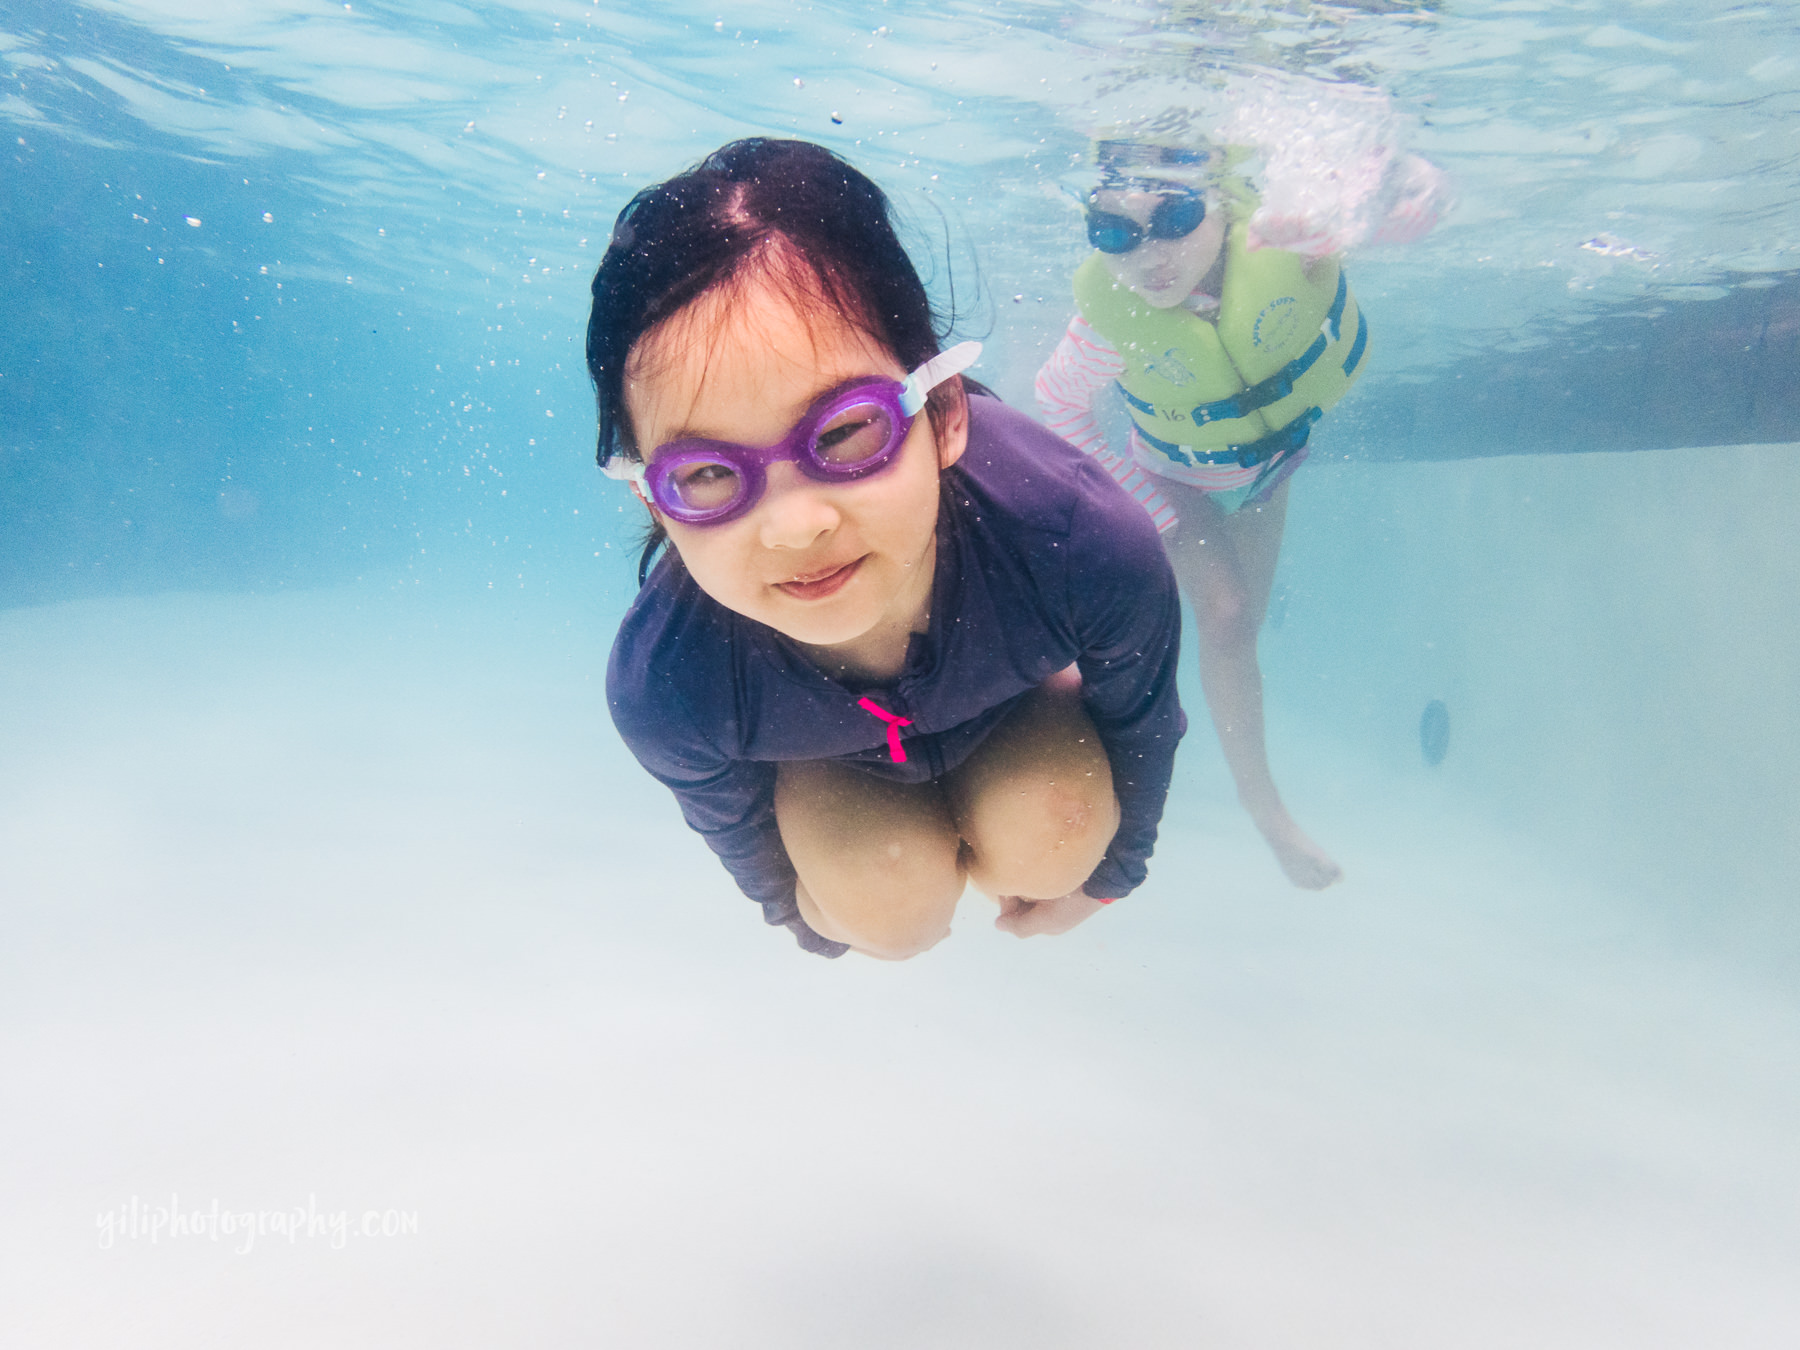 underwater photo of girl in goggles tucked in ball